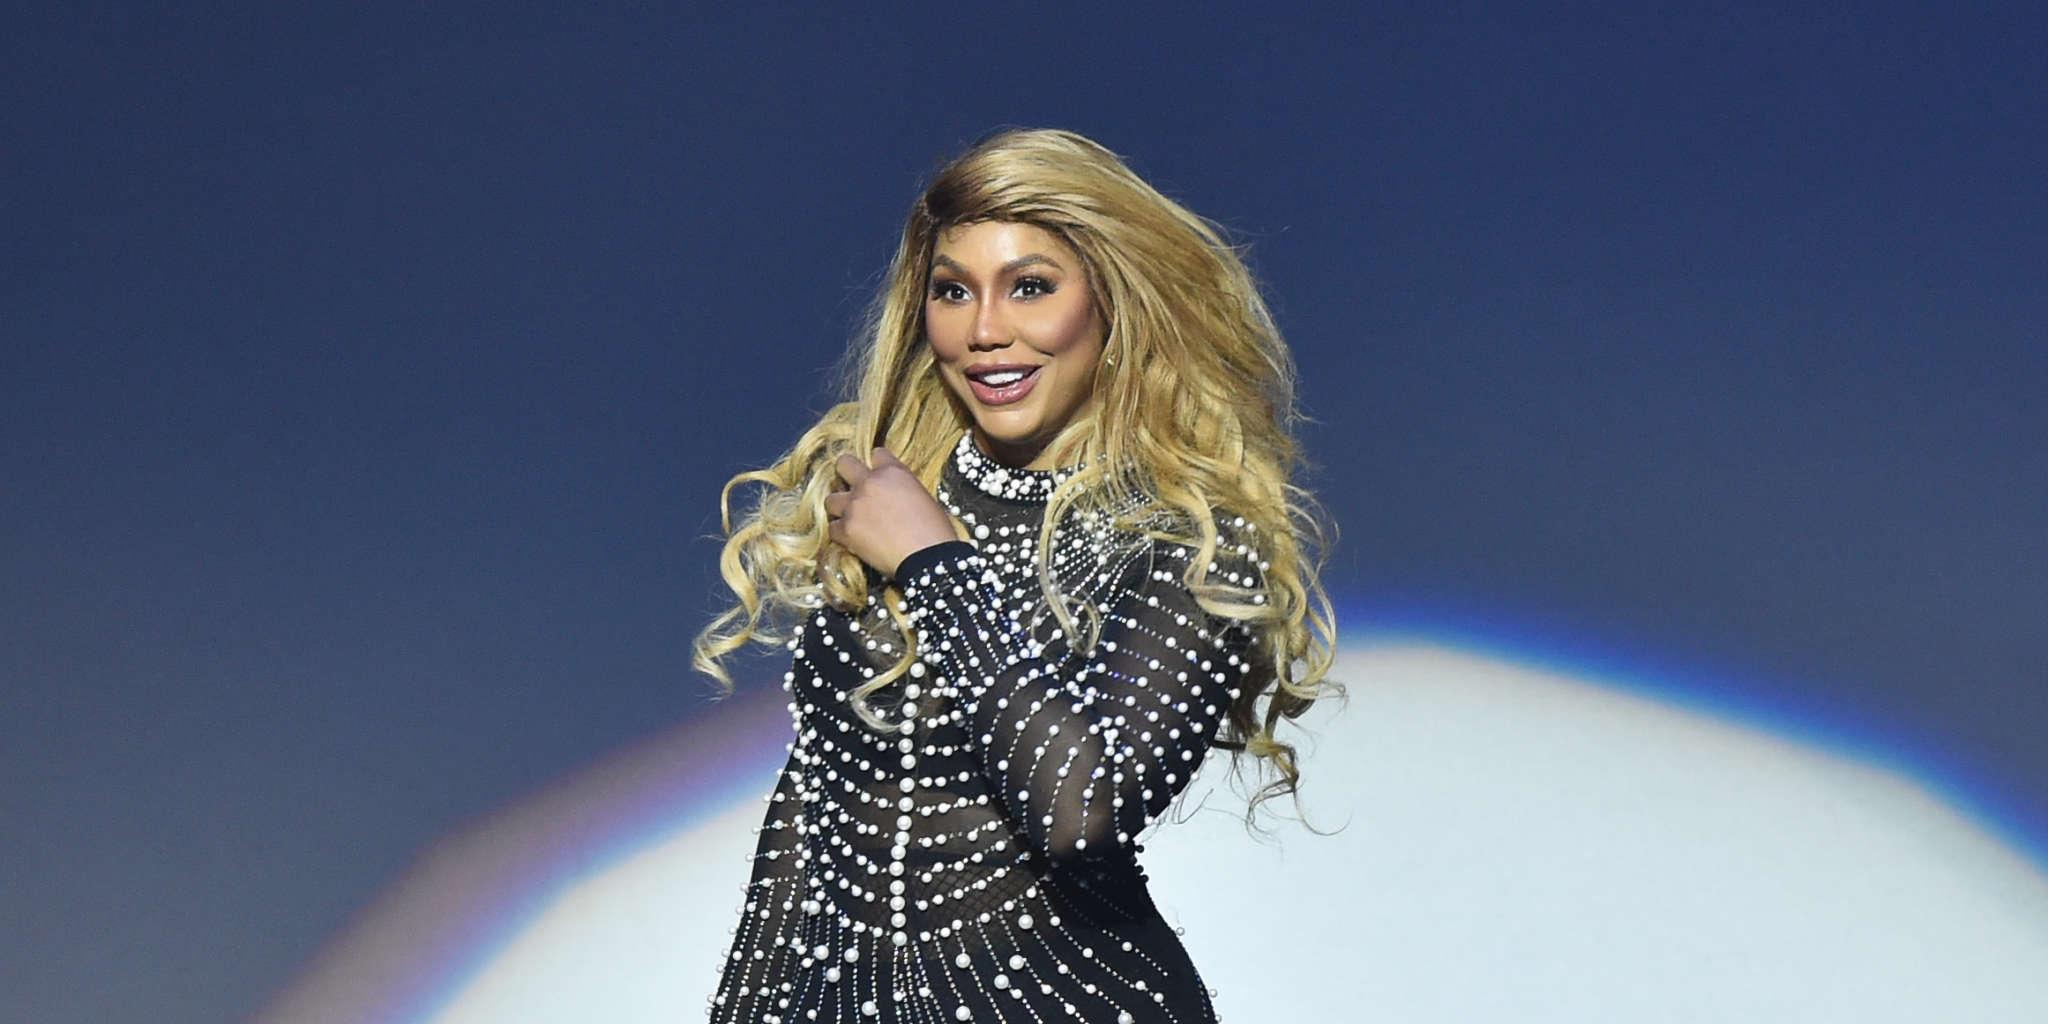 Tamar Braxton Advises People To Vote And They Offer Her Support